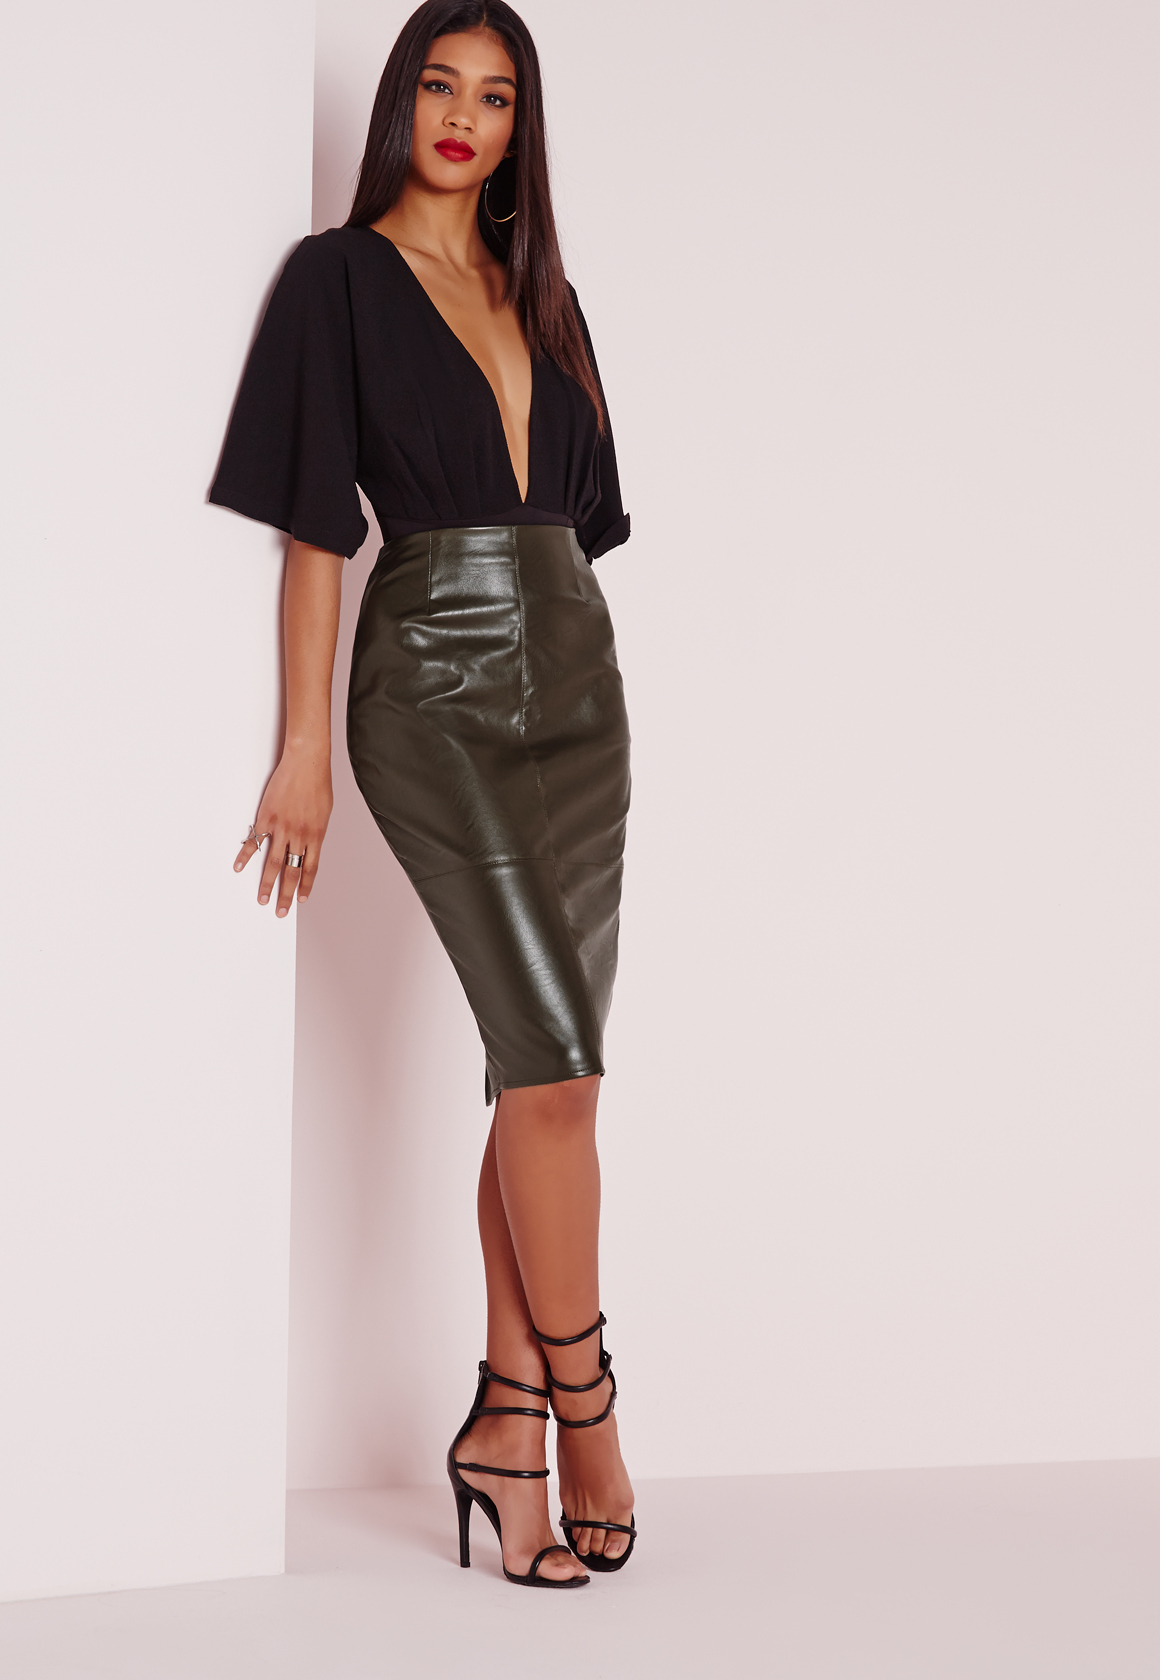 Missguided Faux Leather Seam Detail Midi Skirt Khaki in Natural | Lyst